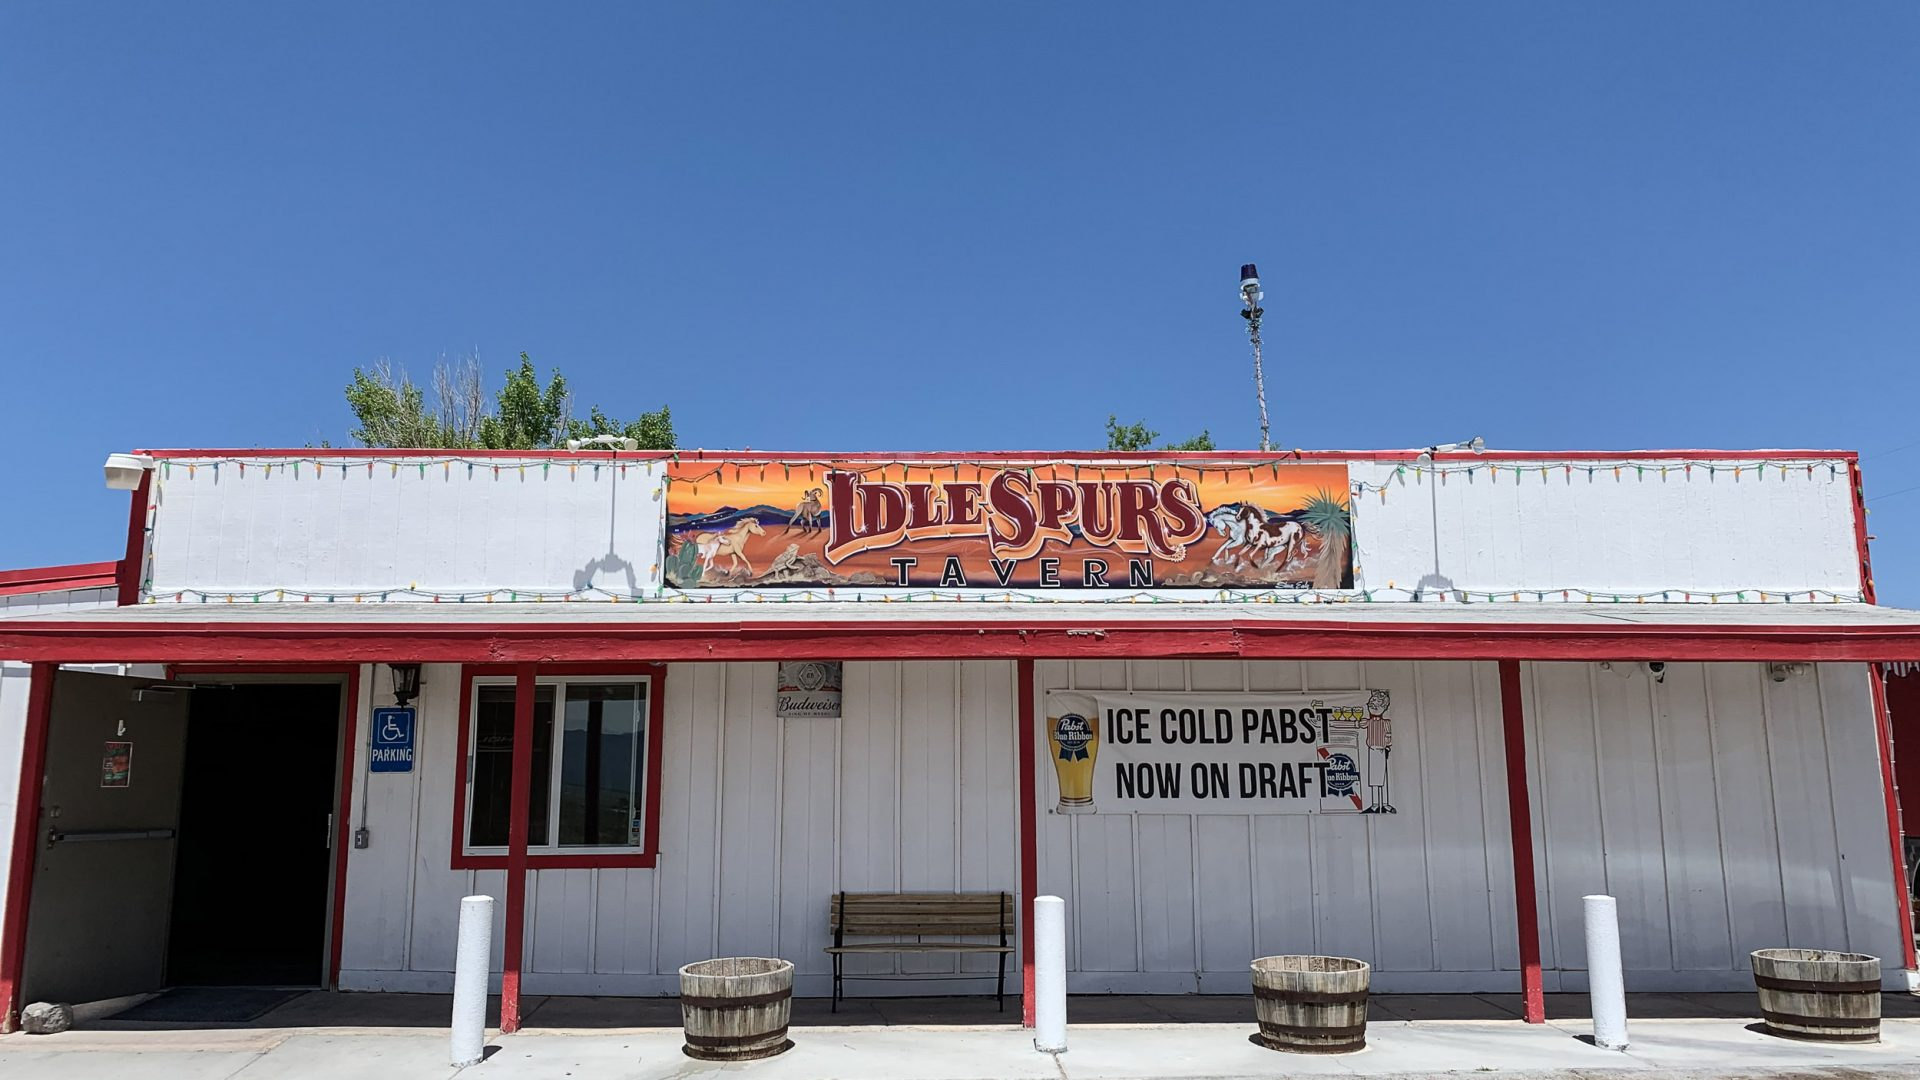 The Idle Spurs Tavern in Sandy Valley, Nevada.